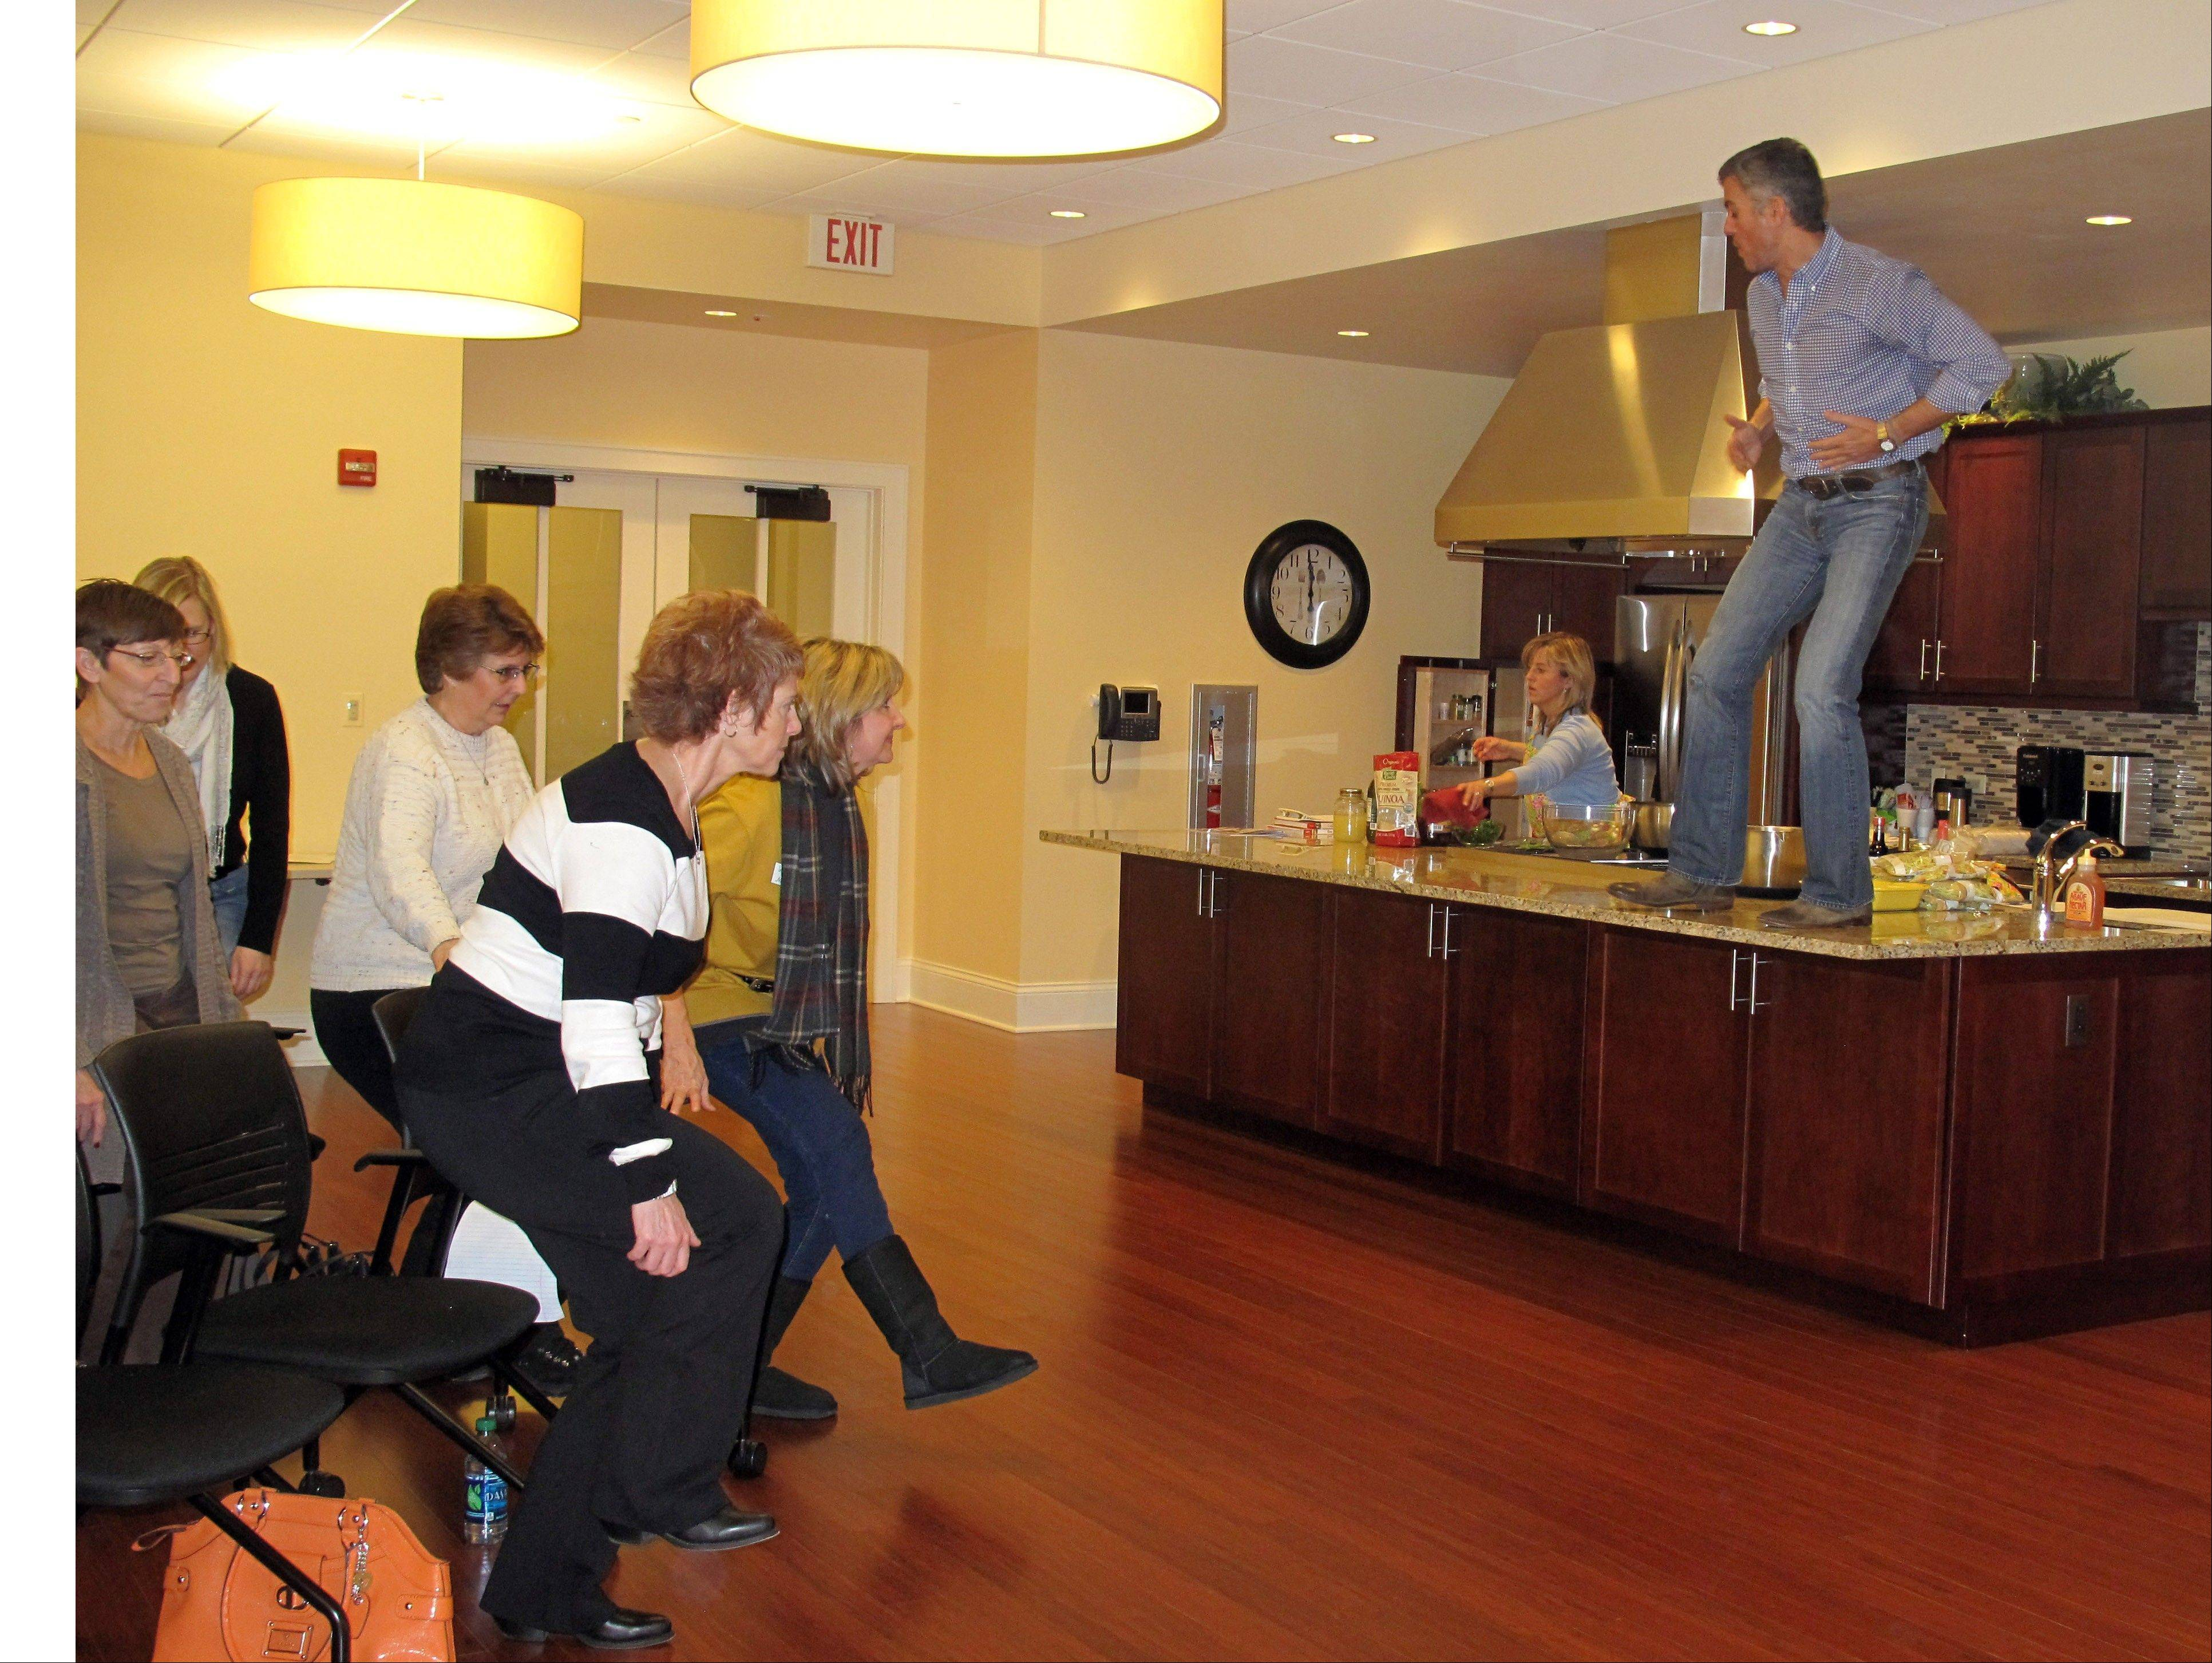 Celebrity trainer and author Jim Karas leads a crowd in squats from atop a kitchen counter at the LivingWell Cancer Resource Center in Geneva, where he spoke Saturday about ways cancer patients and others can boost immunity.